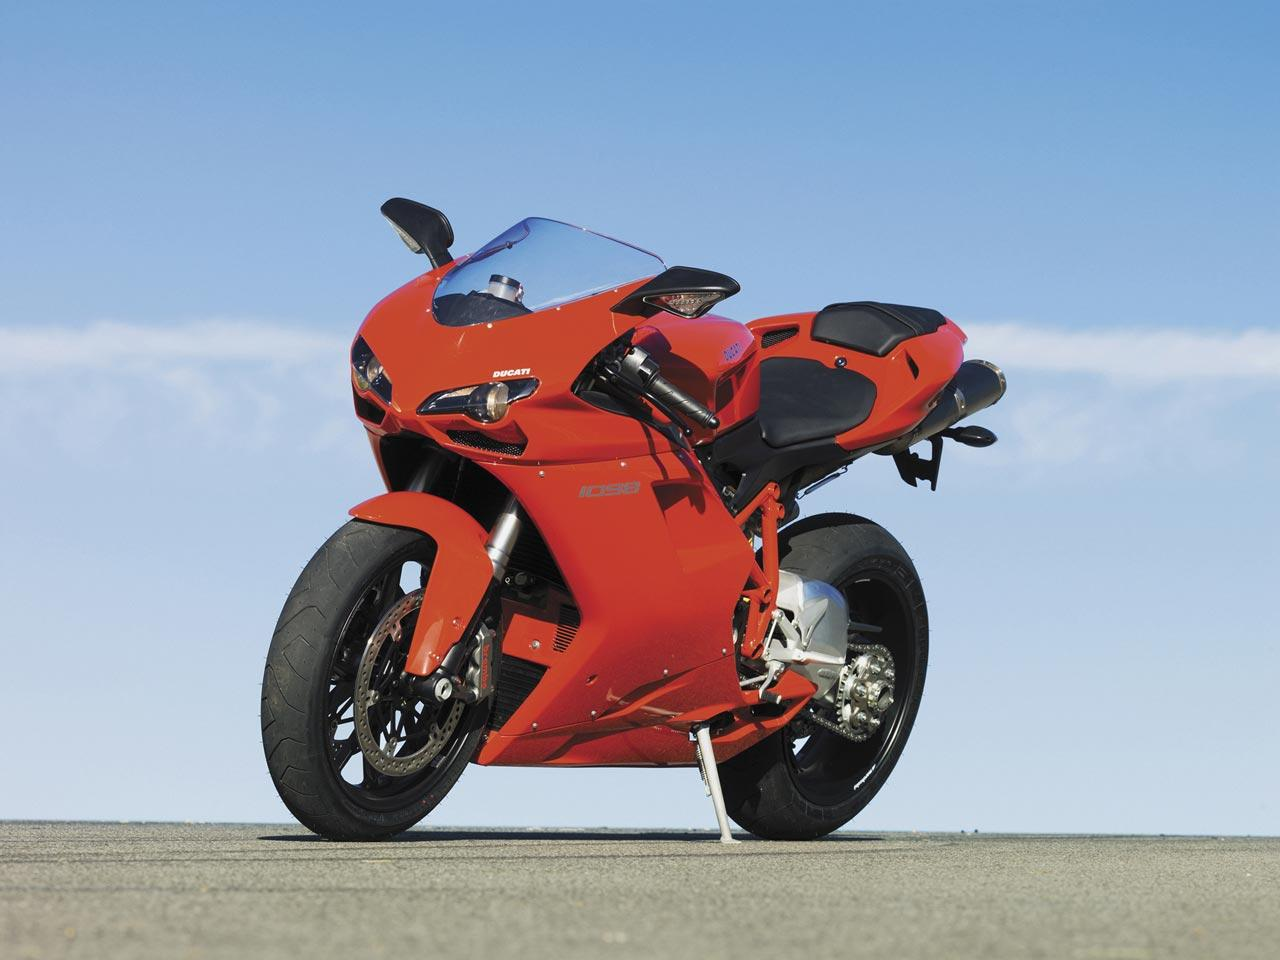 Ducati 1098 as well Ducati Bike Girls furthermore 1098 Tax Form besides 2008 Ducati 1098 Superbike in addition S le 1098 Tax Form. on 1098 html